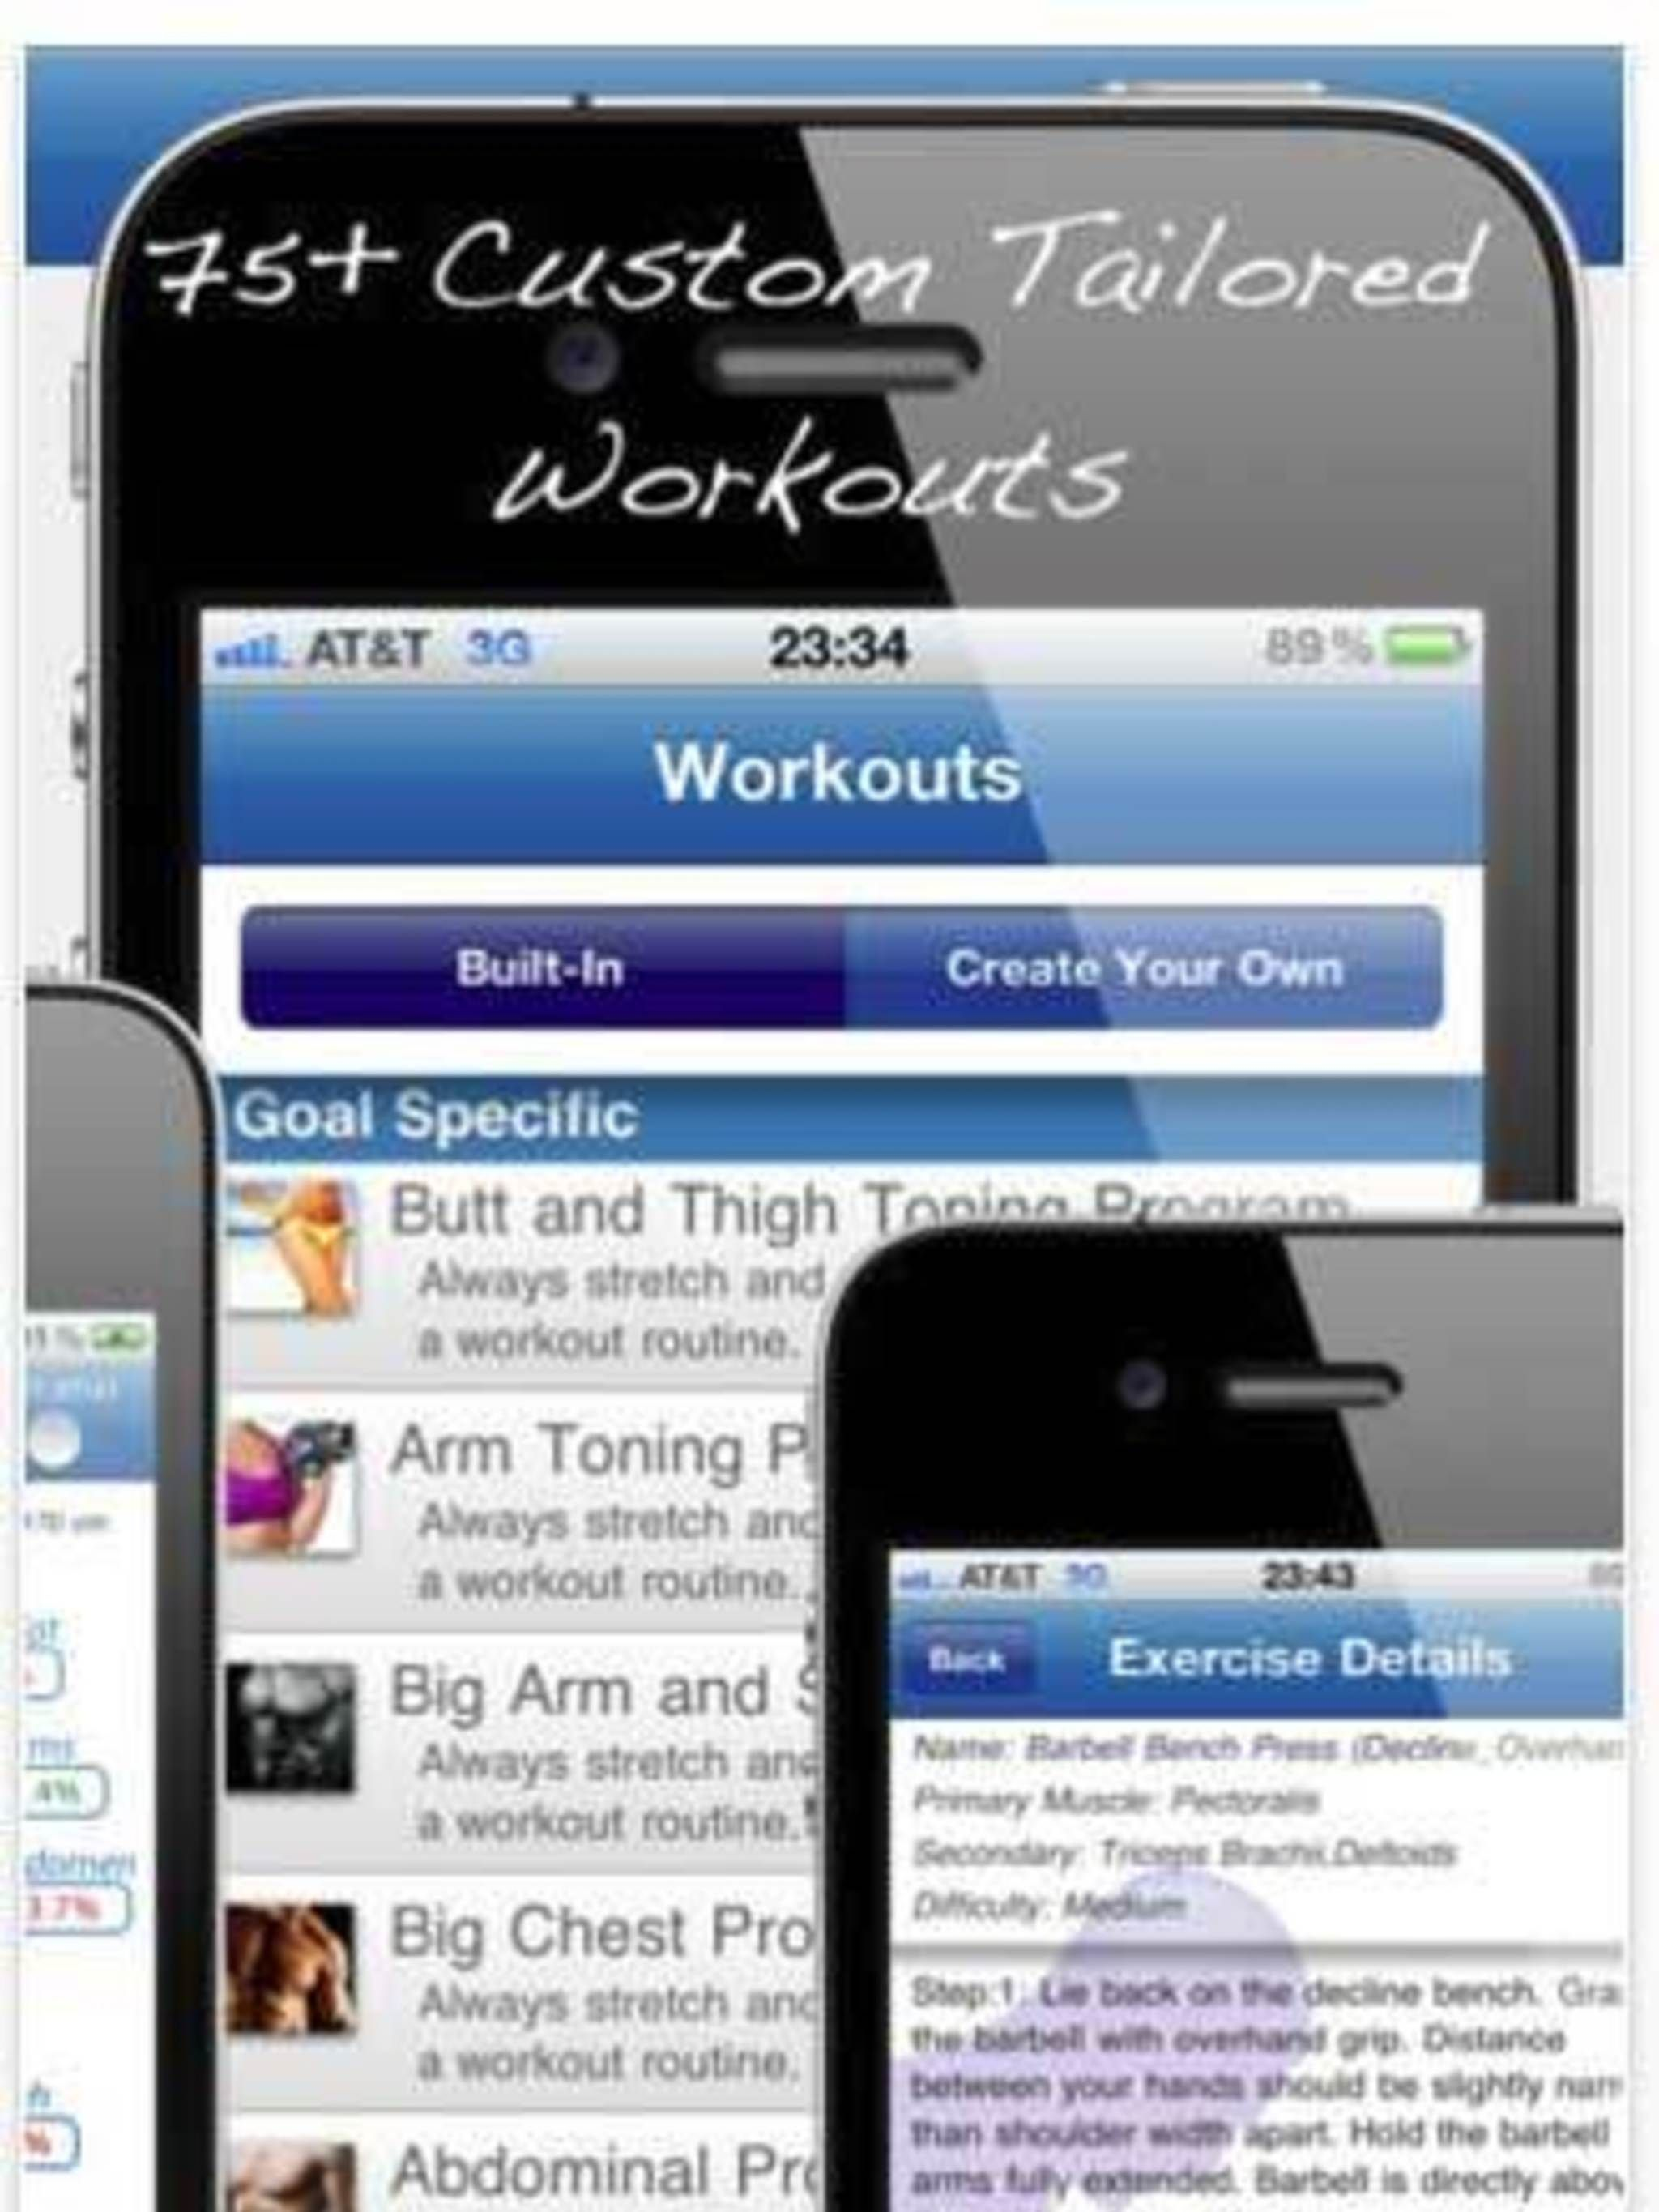 <p>The ultimate mobile workout guide, whether you want to tone your whole body, concentrate on strengthening your core or work on tightening your bum, this app has every option covered and thanks to the easy graphics and simple instructions, even first ti